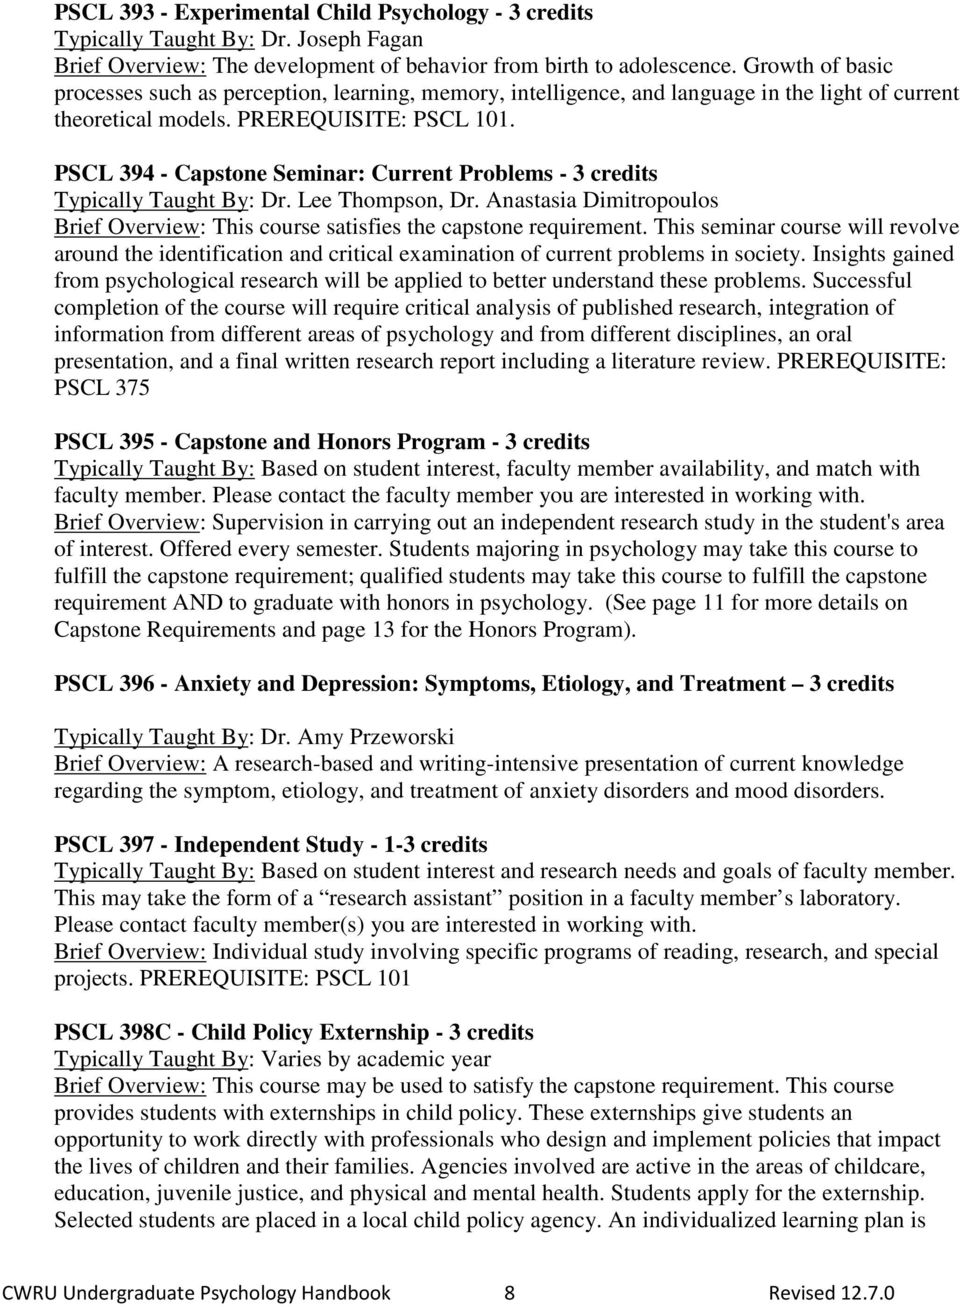 PSCL 394 - Capstone Seminar: Current Problems - 3 credits Typically Taught By: Dr. Lee Thompson, Dr. Anastasia Dimitropoulos Brief Overview: This course satisfies the capstone requirement.